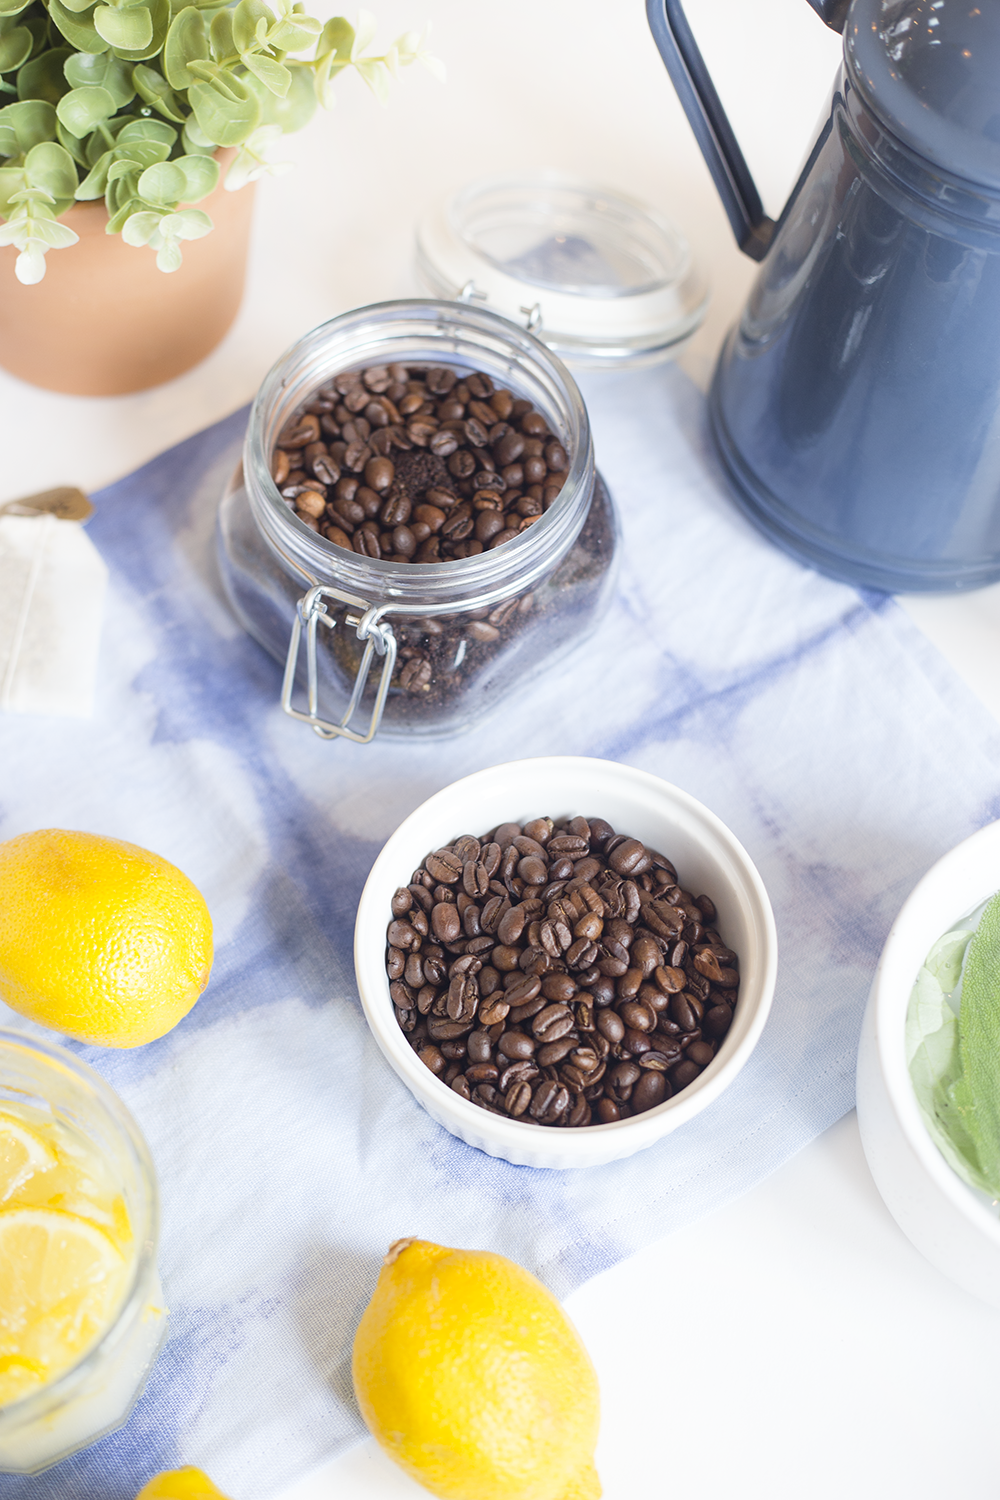 Need to recharge? Try these four at-home spa remedies including a coffee scrub, lemon foot scrub, oatmeal and milk bath, and herb steam facial to recharge. Click through for the recipes!